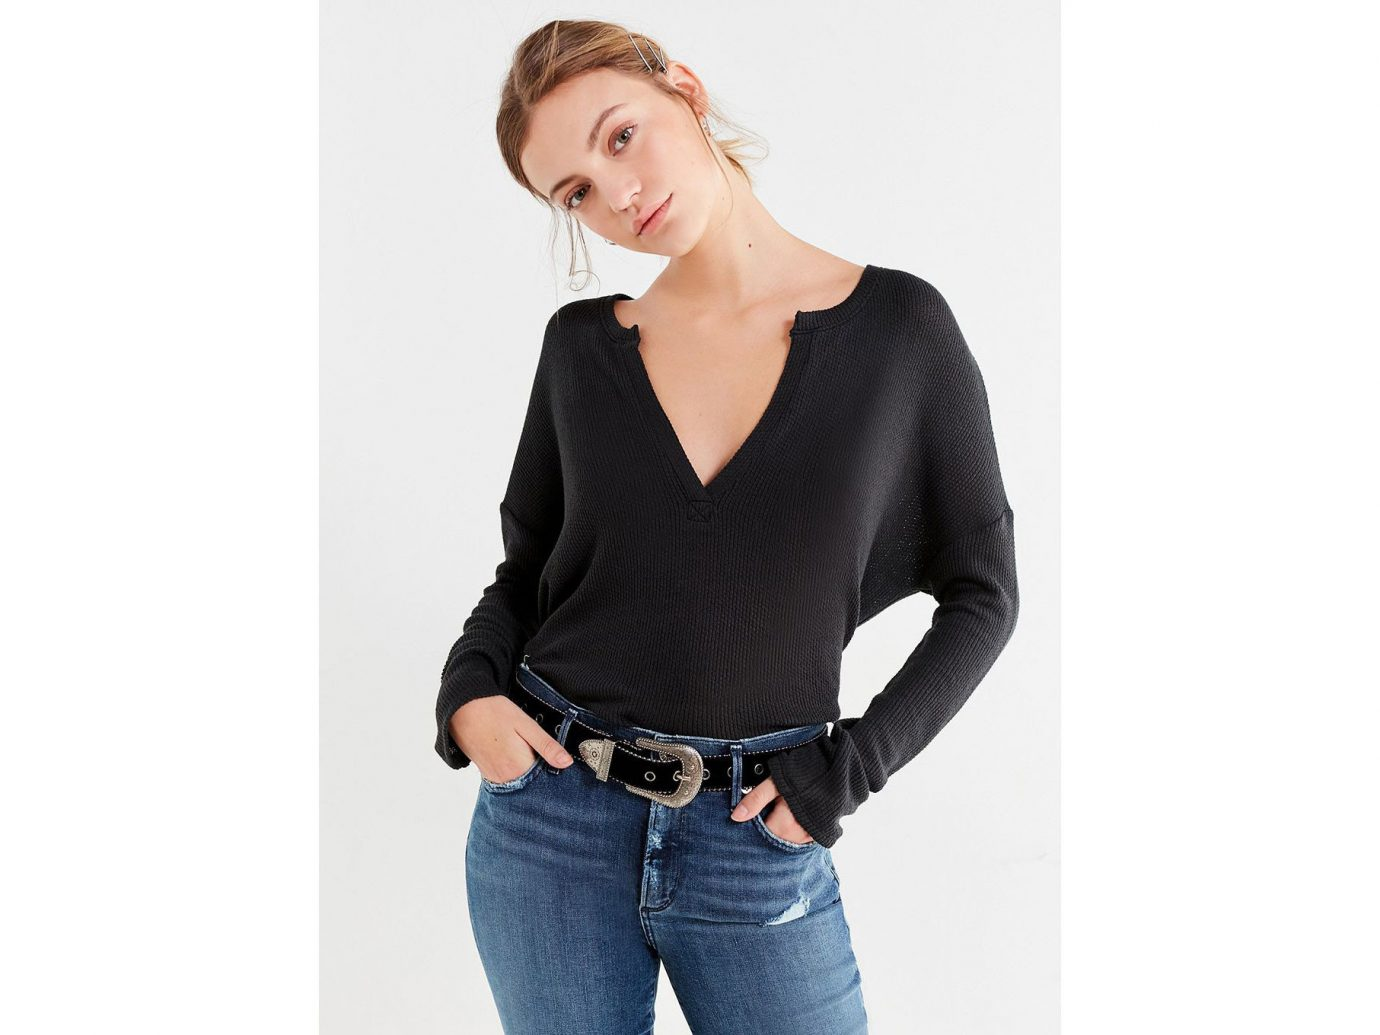 City NYC Style + Design Travel Shop person woman clothing sleeve shoulder neck posing fashion model joint t shirt model waist product lady beautiful